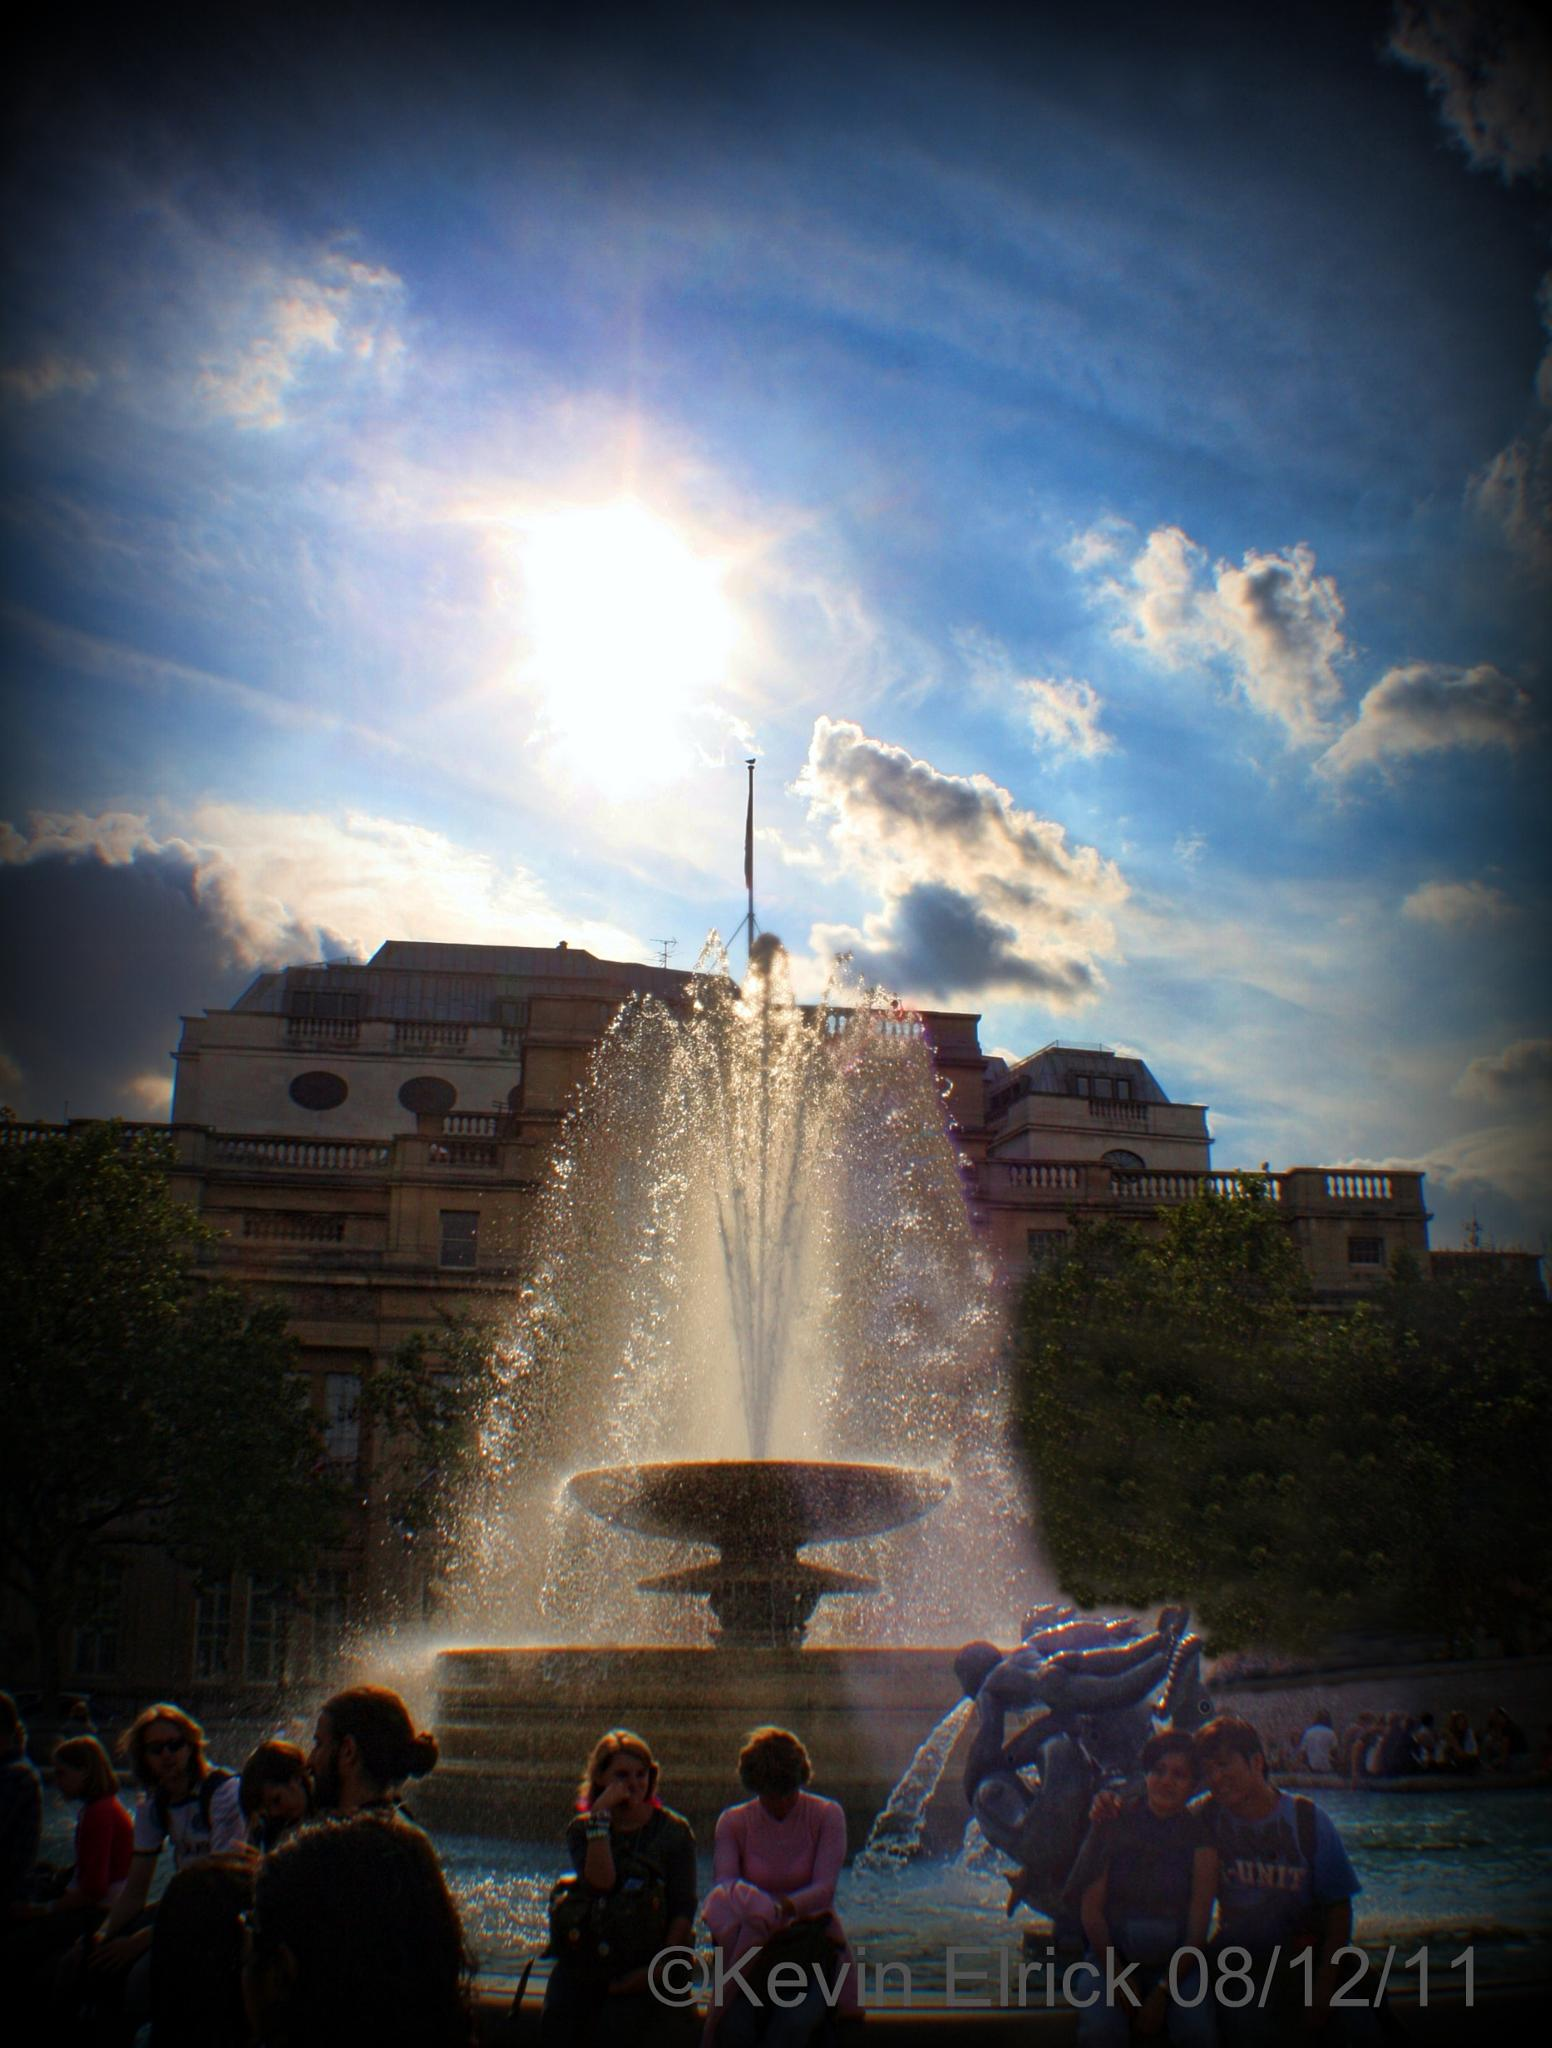 Trafalgar Square London  by keve E